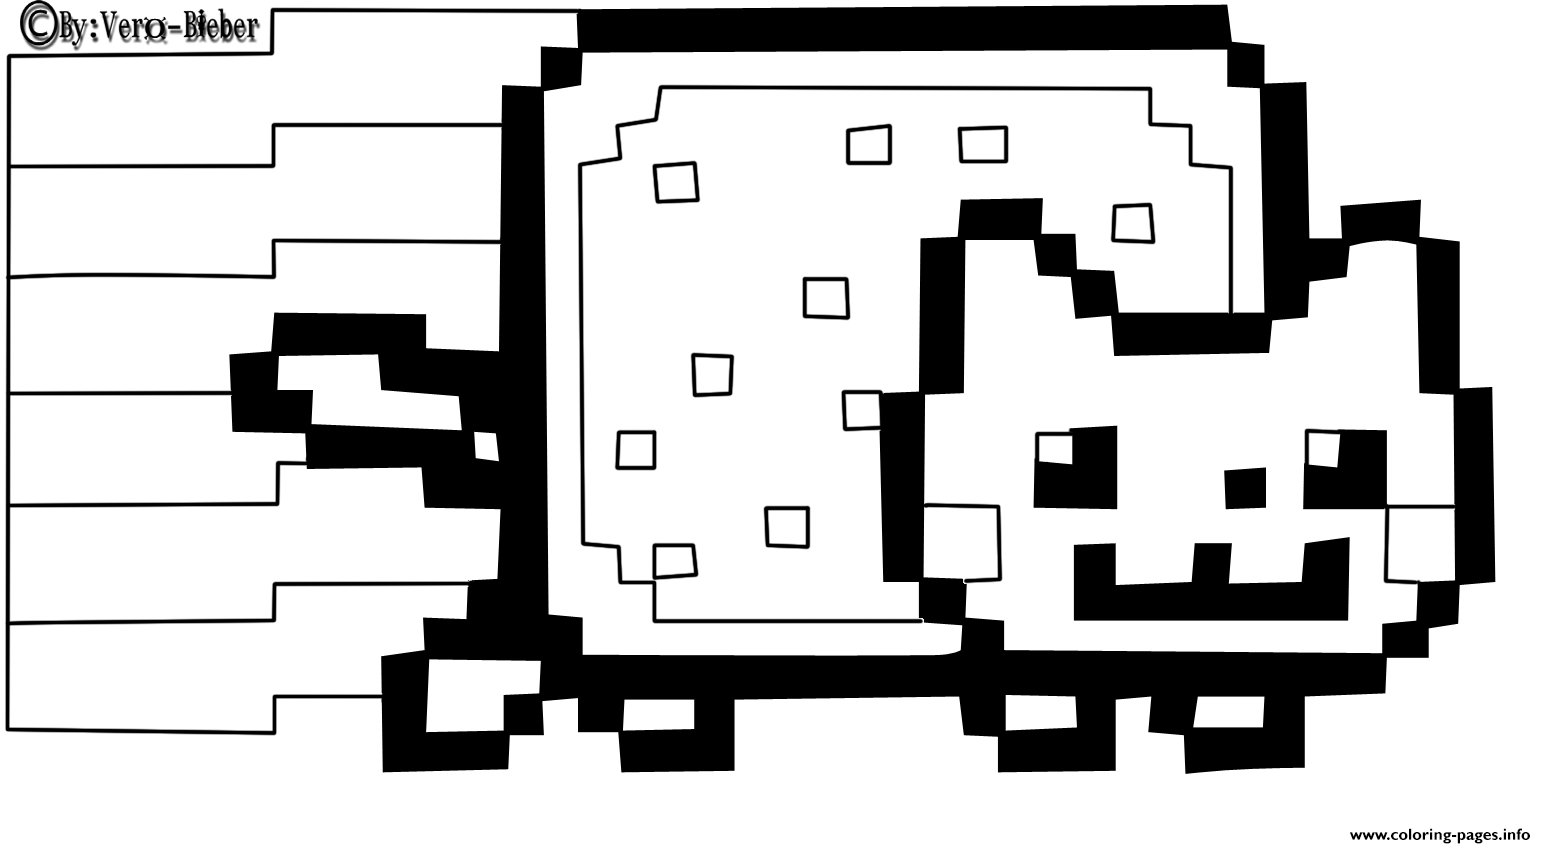 Print Nyan Cat By Vero Bieber Coloring Pages